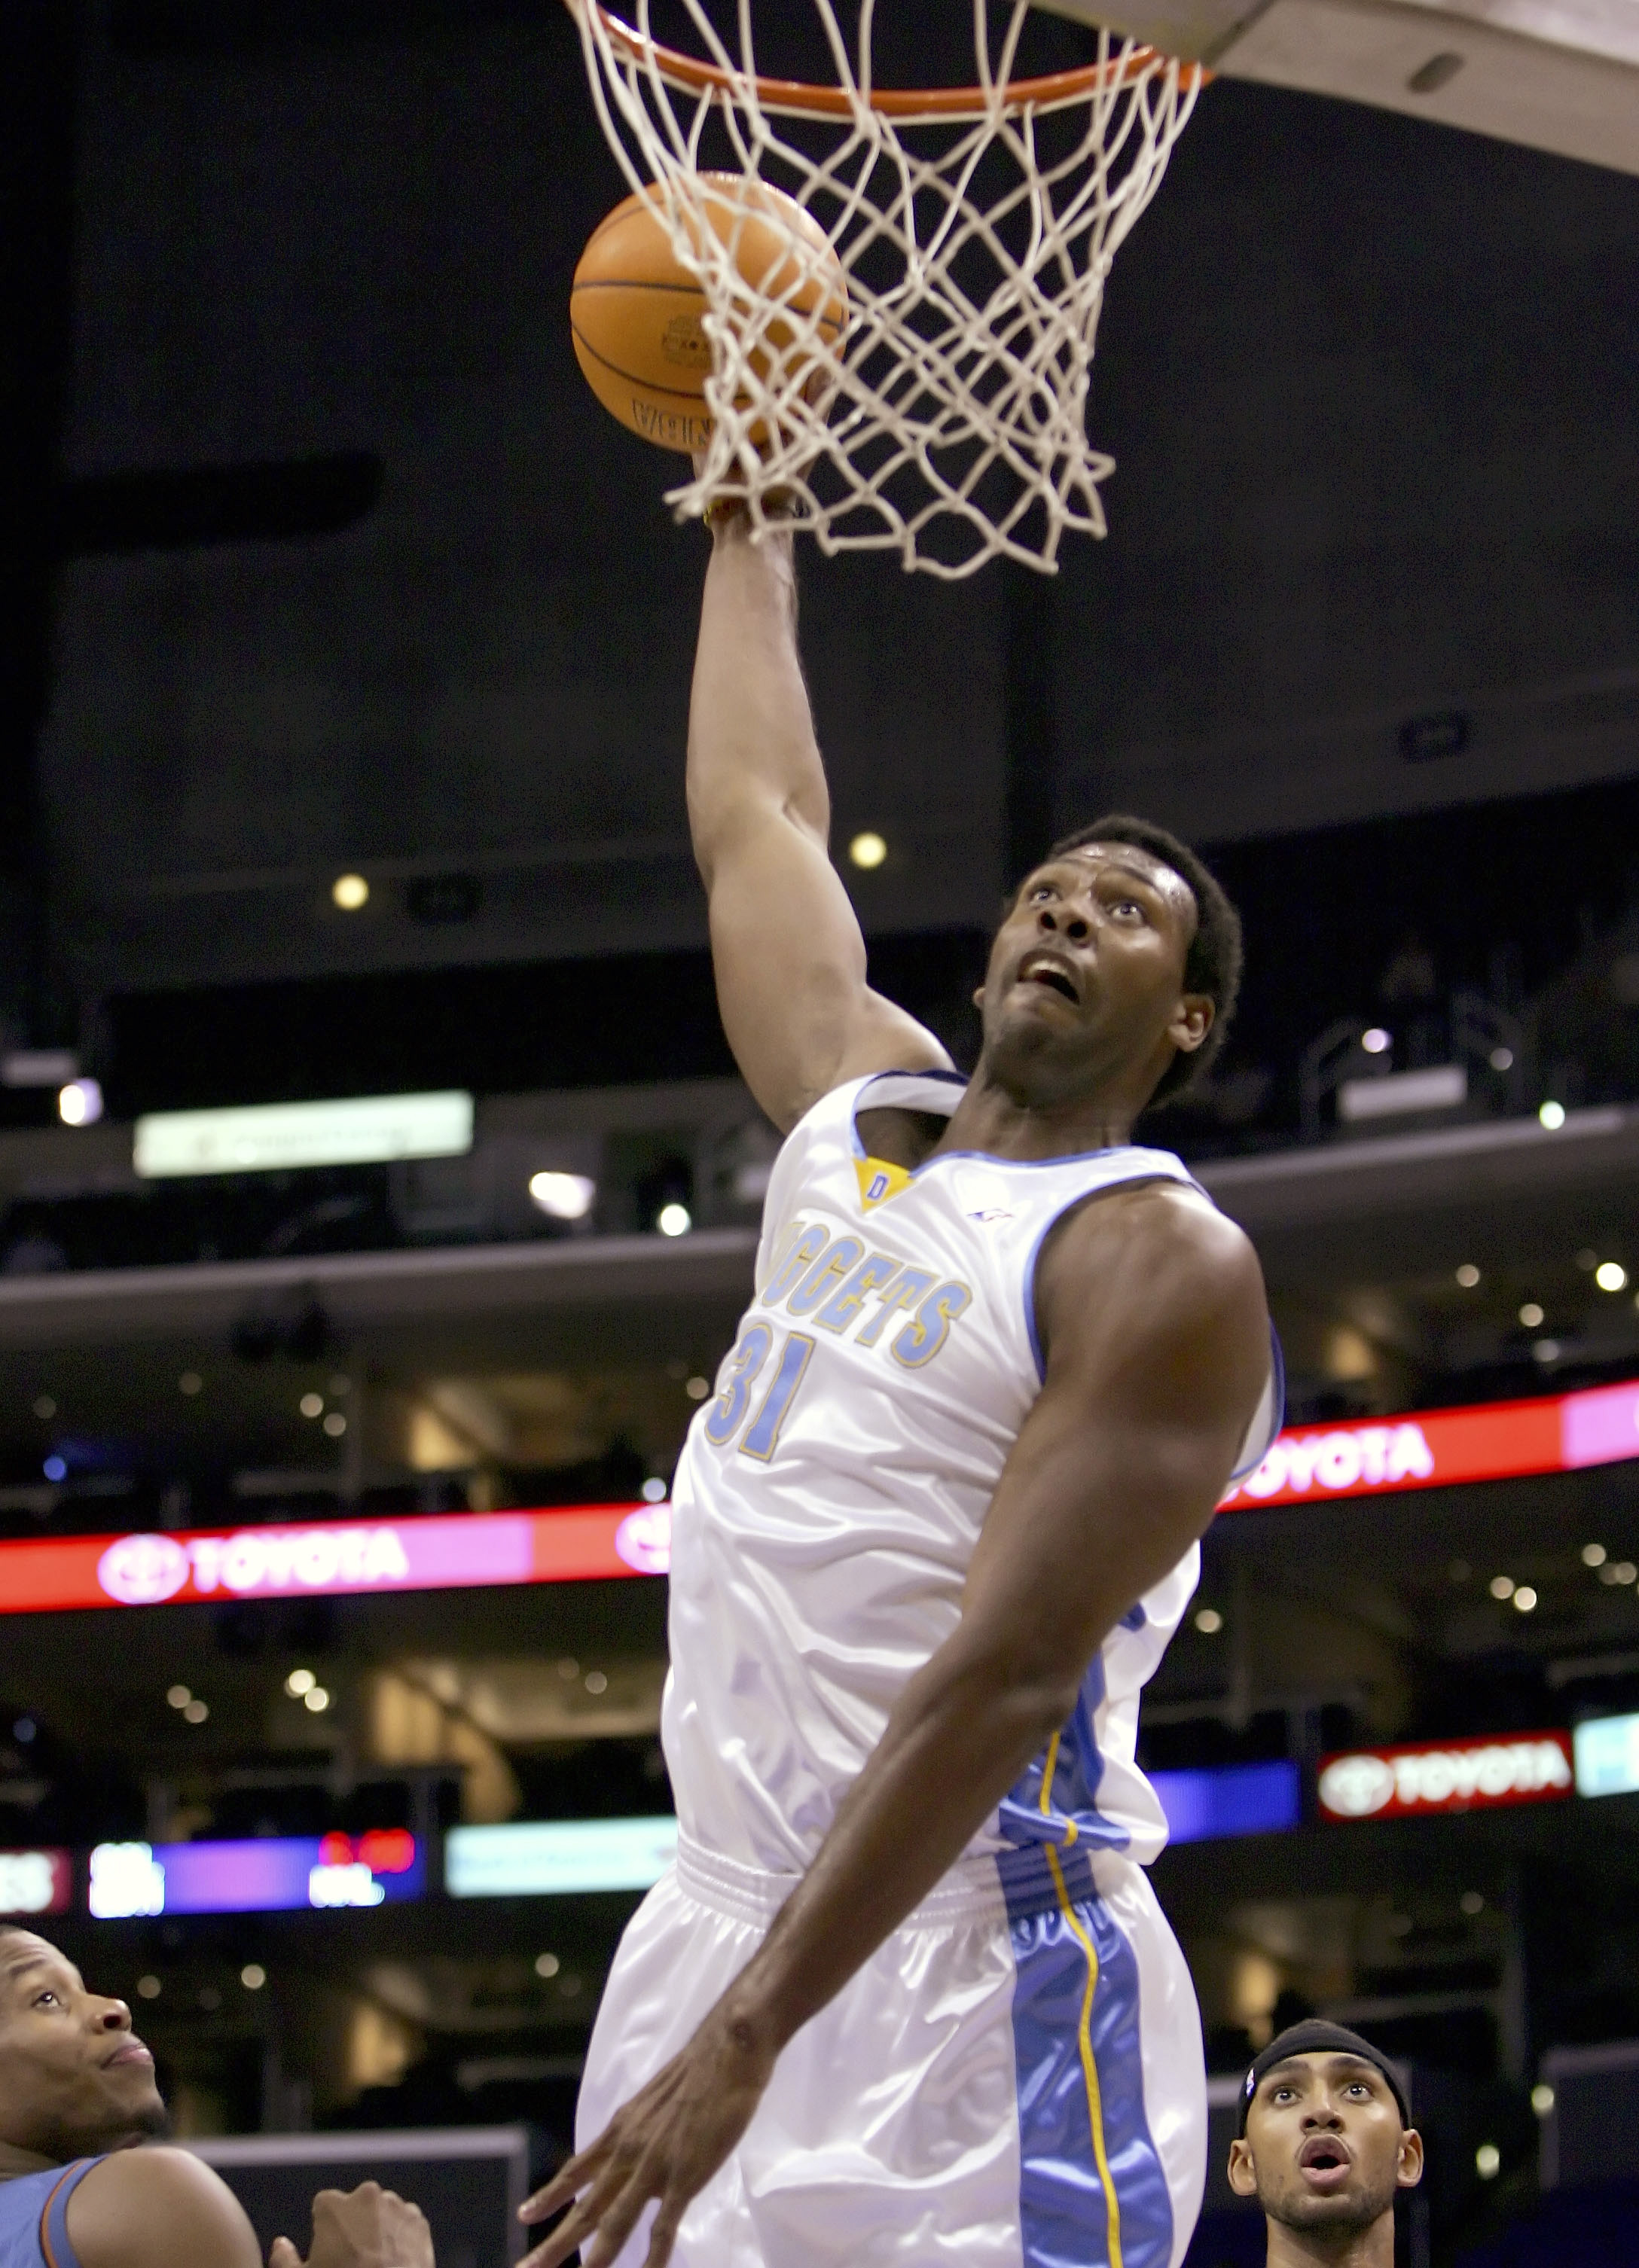 LOS ANGELES - OCTOBER 21:  Nene Hilario #31 of the Denver Nuggets slam dunks against the Washington Wizards on October 21, 2005 at Staples Center in Los Angeles, California. NOTE TO USER: User expressly acknowledges and agrees that, by downloading and or